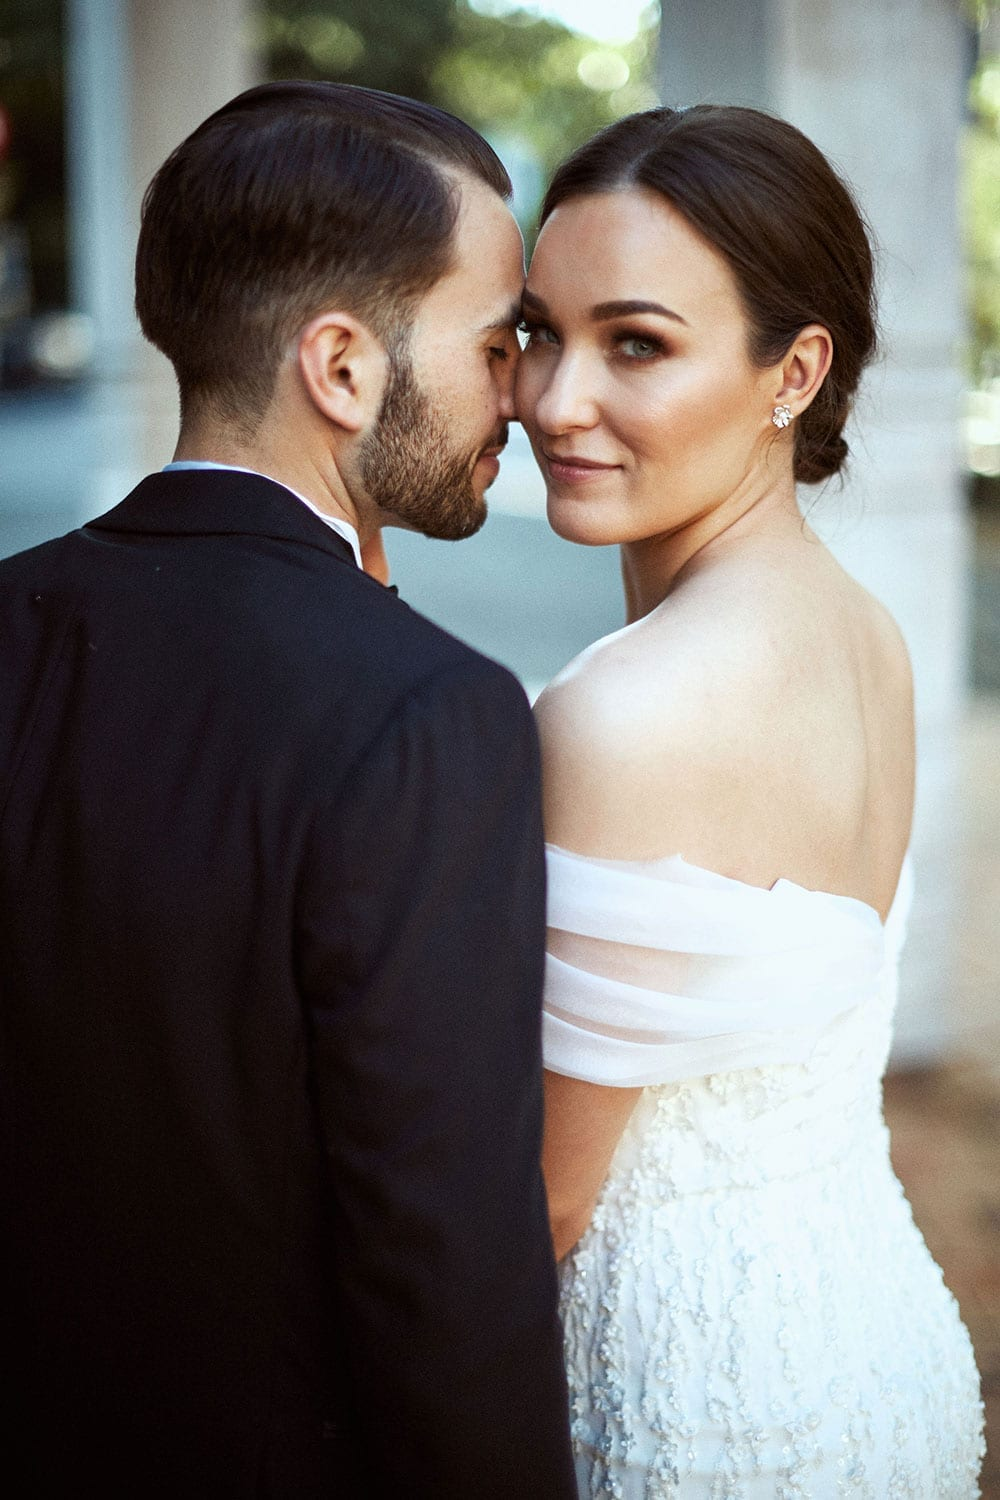 Vinka Design Features Real Weddings - bride in custom made gown with stunning silhouette. Bride and groom embrace,bride looking over shoulder with low back dress detail